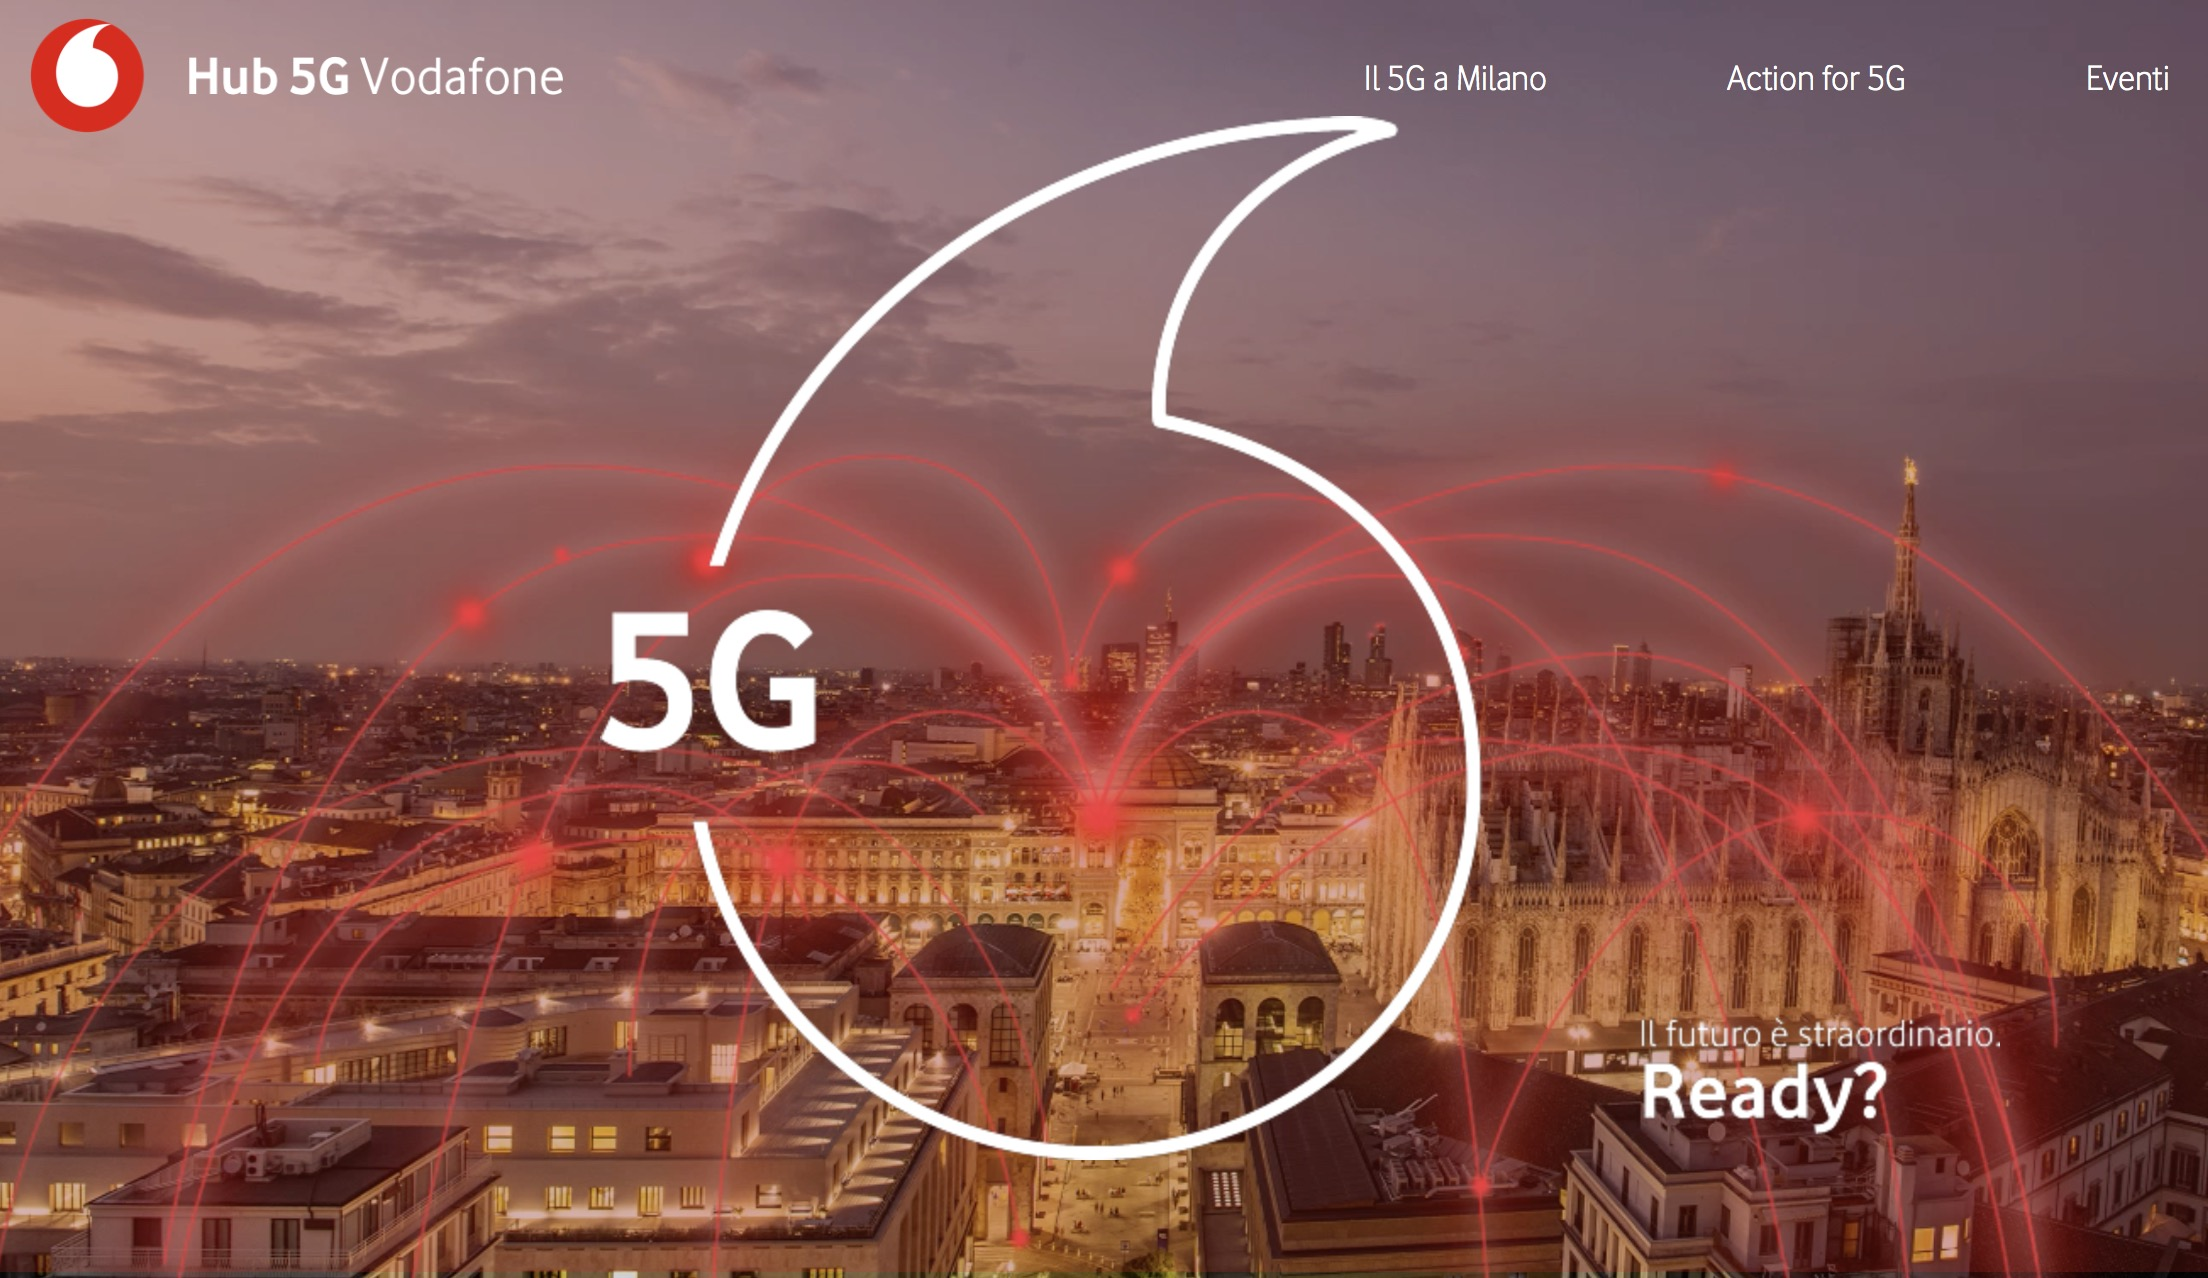 Italy Portugal And Australia Plan 5g Spectrum Auctions